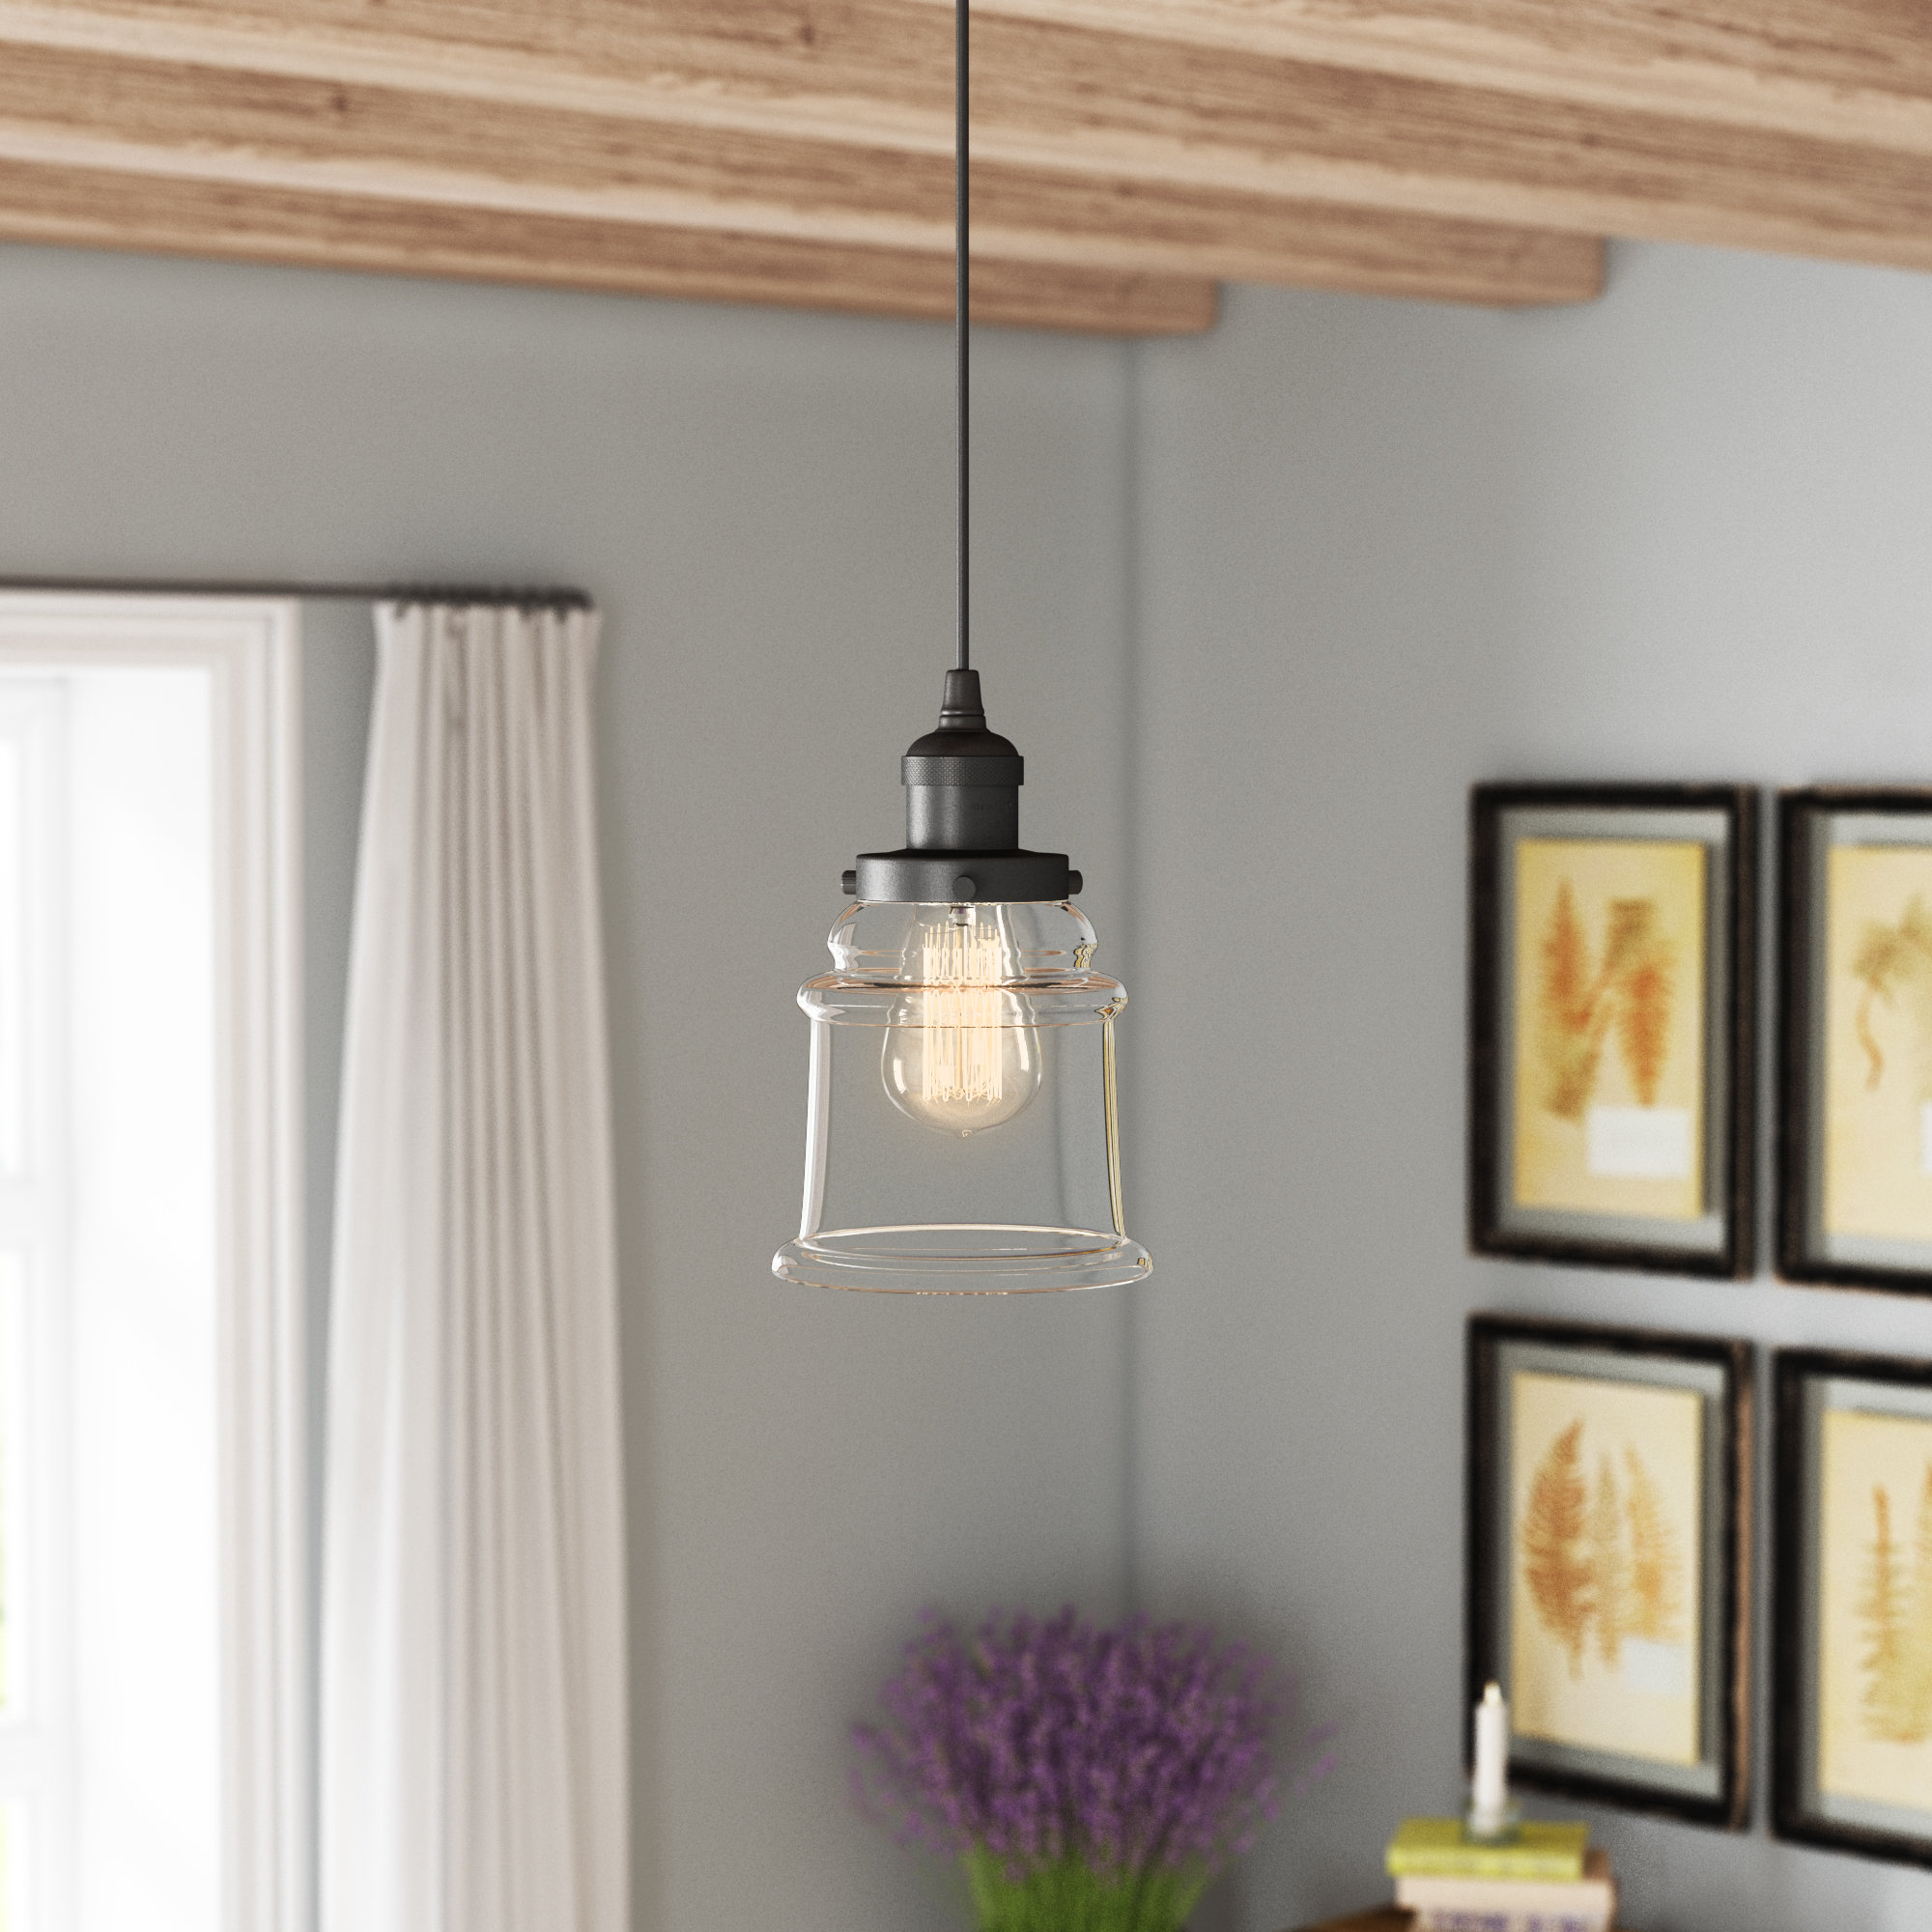 Popular Sargent 1 Light Single Bell Pendants With Regard To Greeley 1 Light Single Bell Pendant (View 9 of 25)